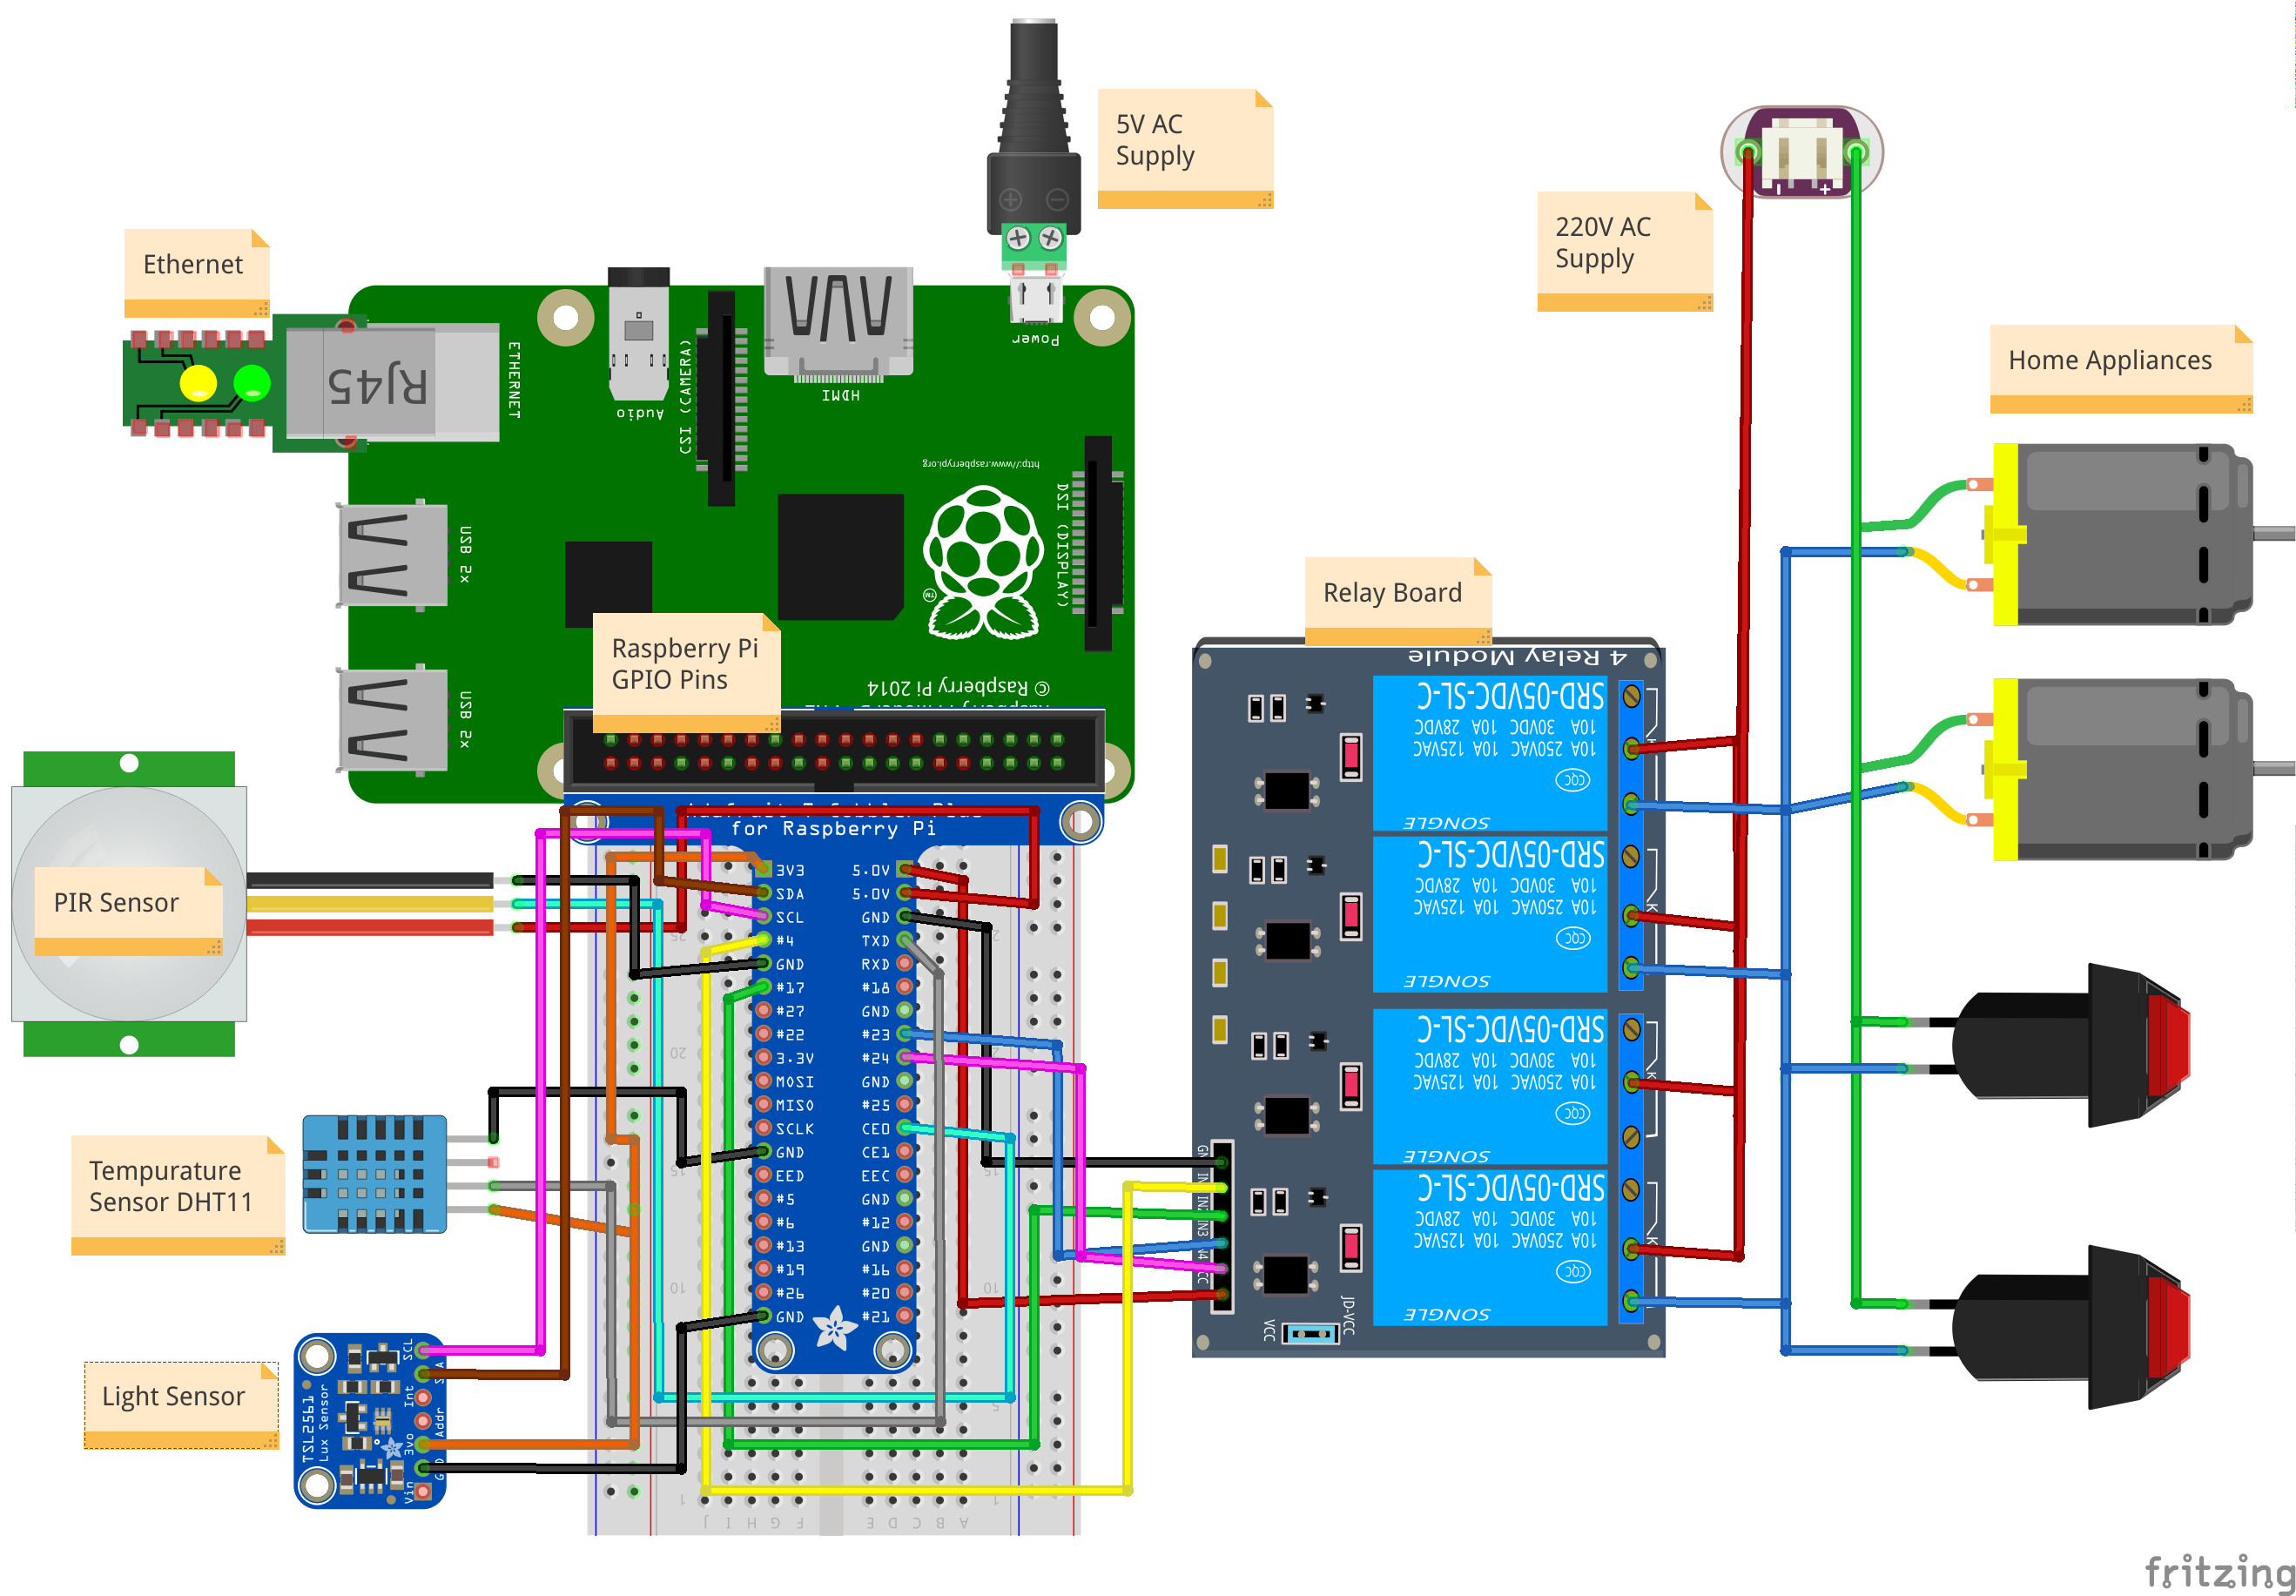 Internet Of Things Raspberry Pi Home Automation System Based On Iot By Mahima Sachan Medium